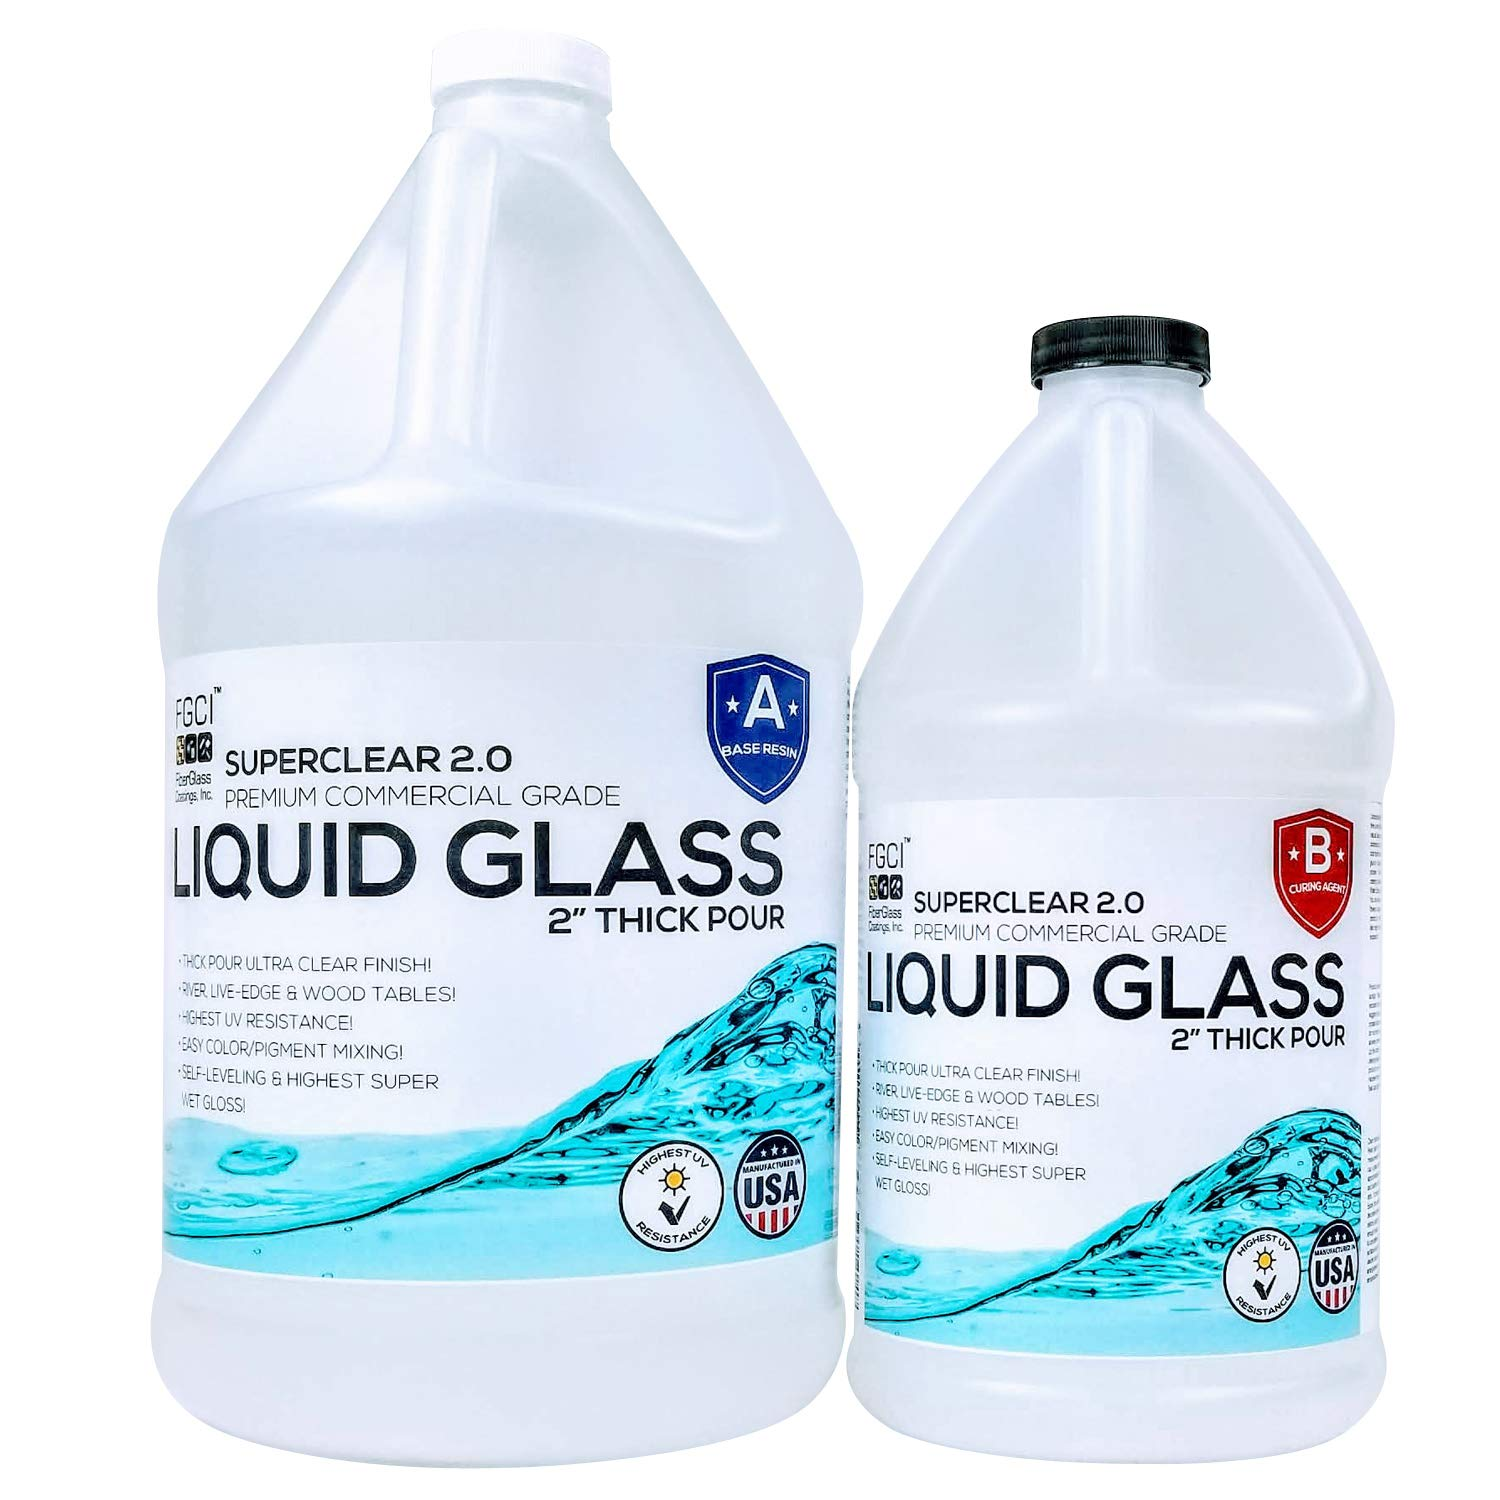 """Liquid Glass 2"""" Thick Pour 2:1 [1.5 GL], Epoxy Resin Crystal Clear 2.0 Self Leveling 2 Part Epoxy Resin Kit Live Edge Epoxy Table, Resin Wood and DIY Epoxy River Table, 1GL Base Resin & ½GL Hardener"""